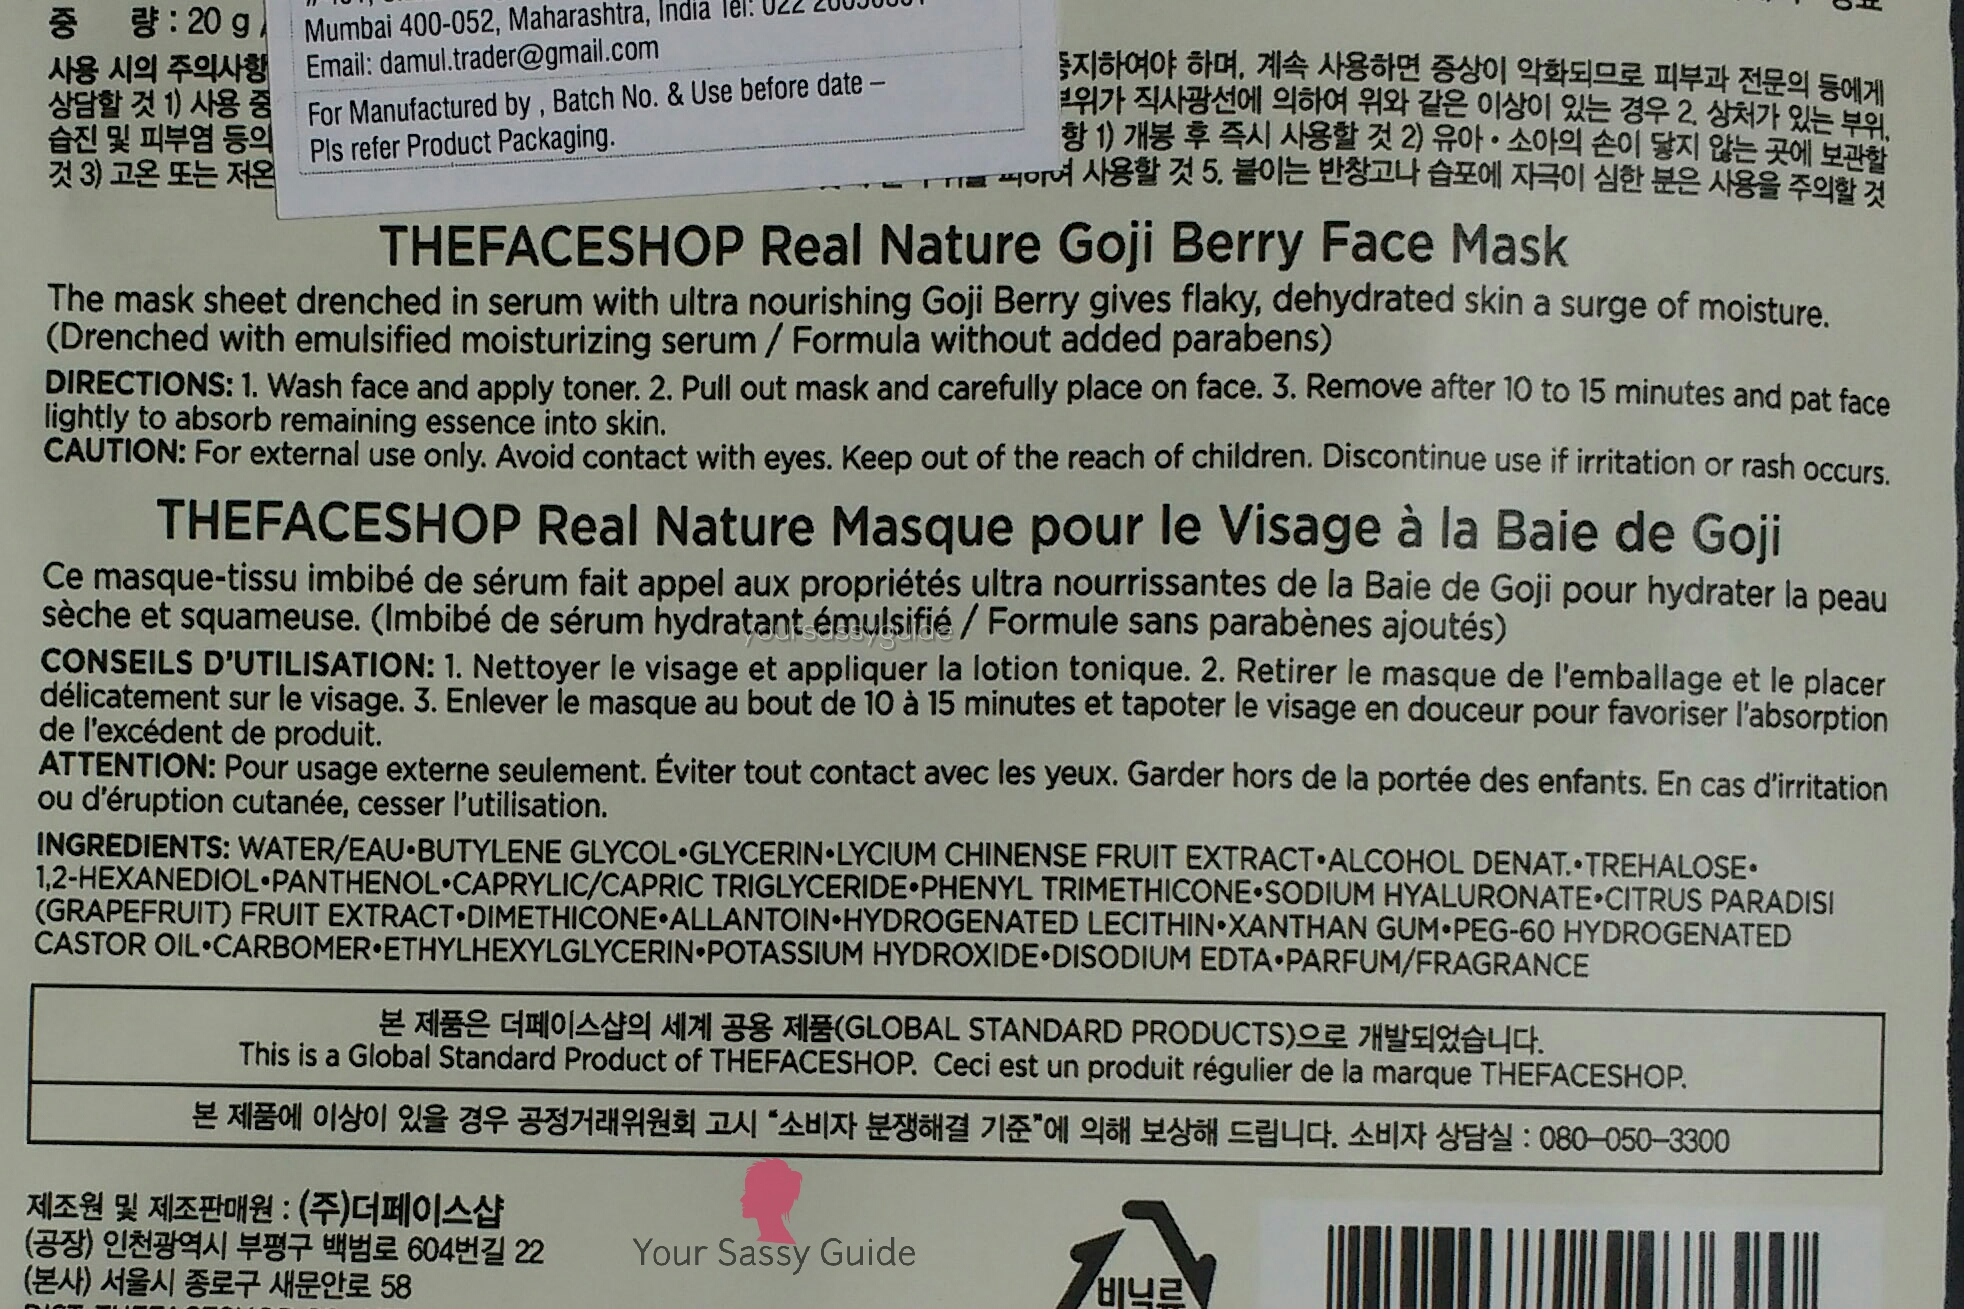 The Face Shop Real Nature Goji Berry Face Mask